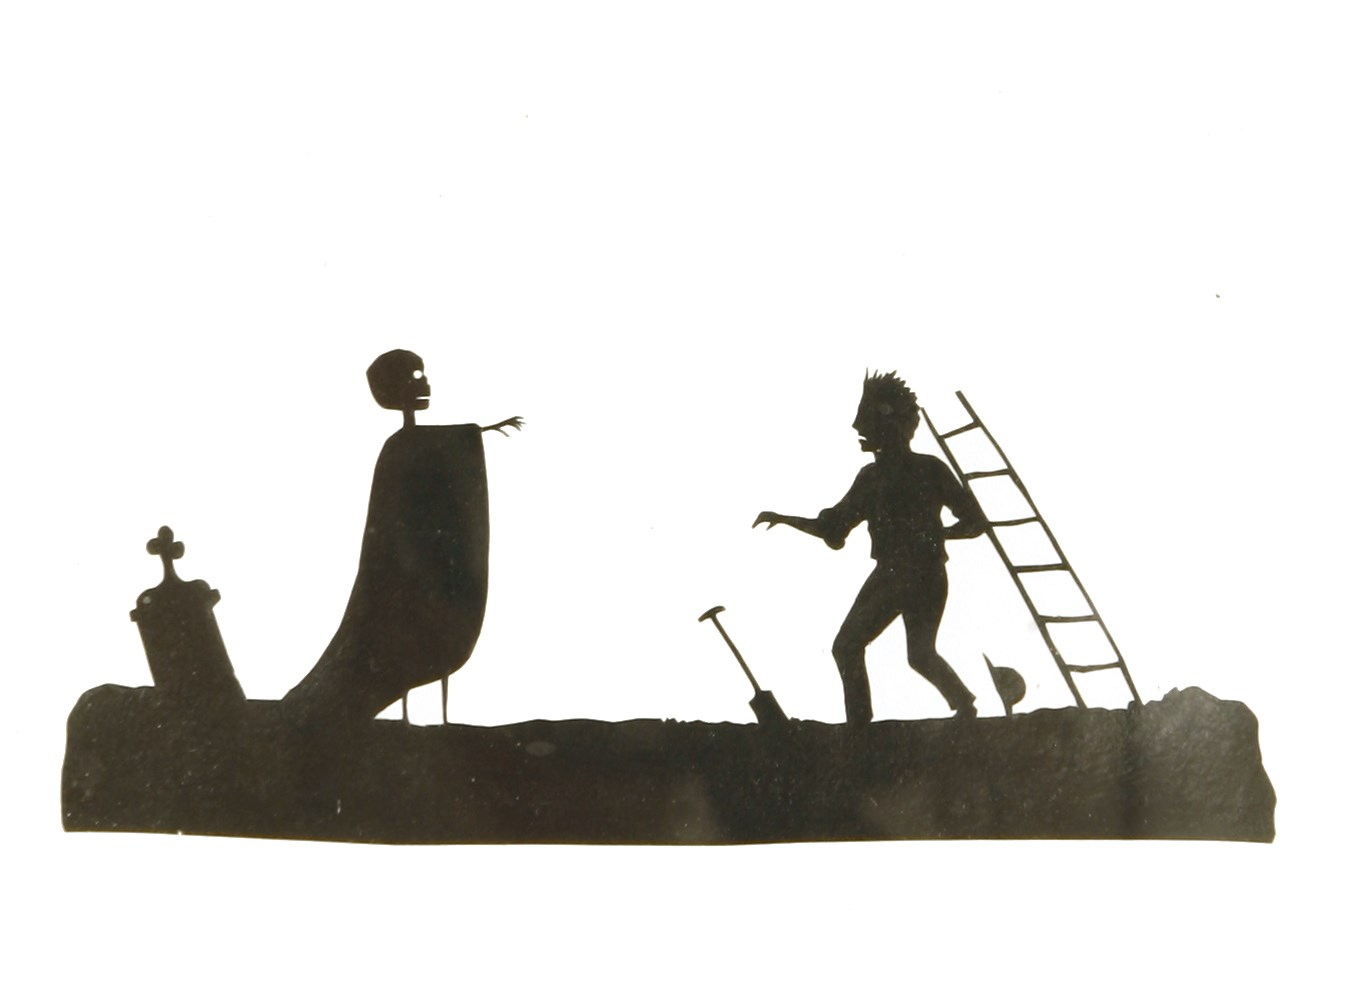 19th century pictorial silhouette of grave digger